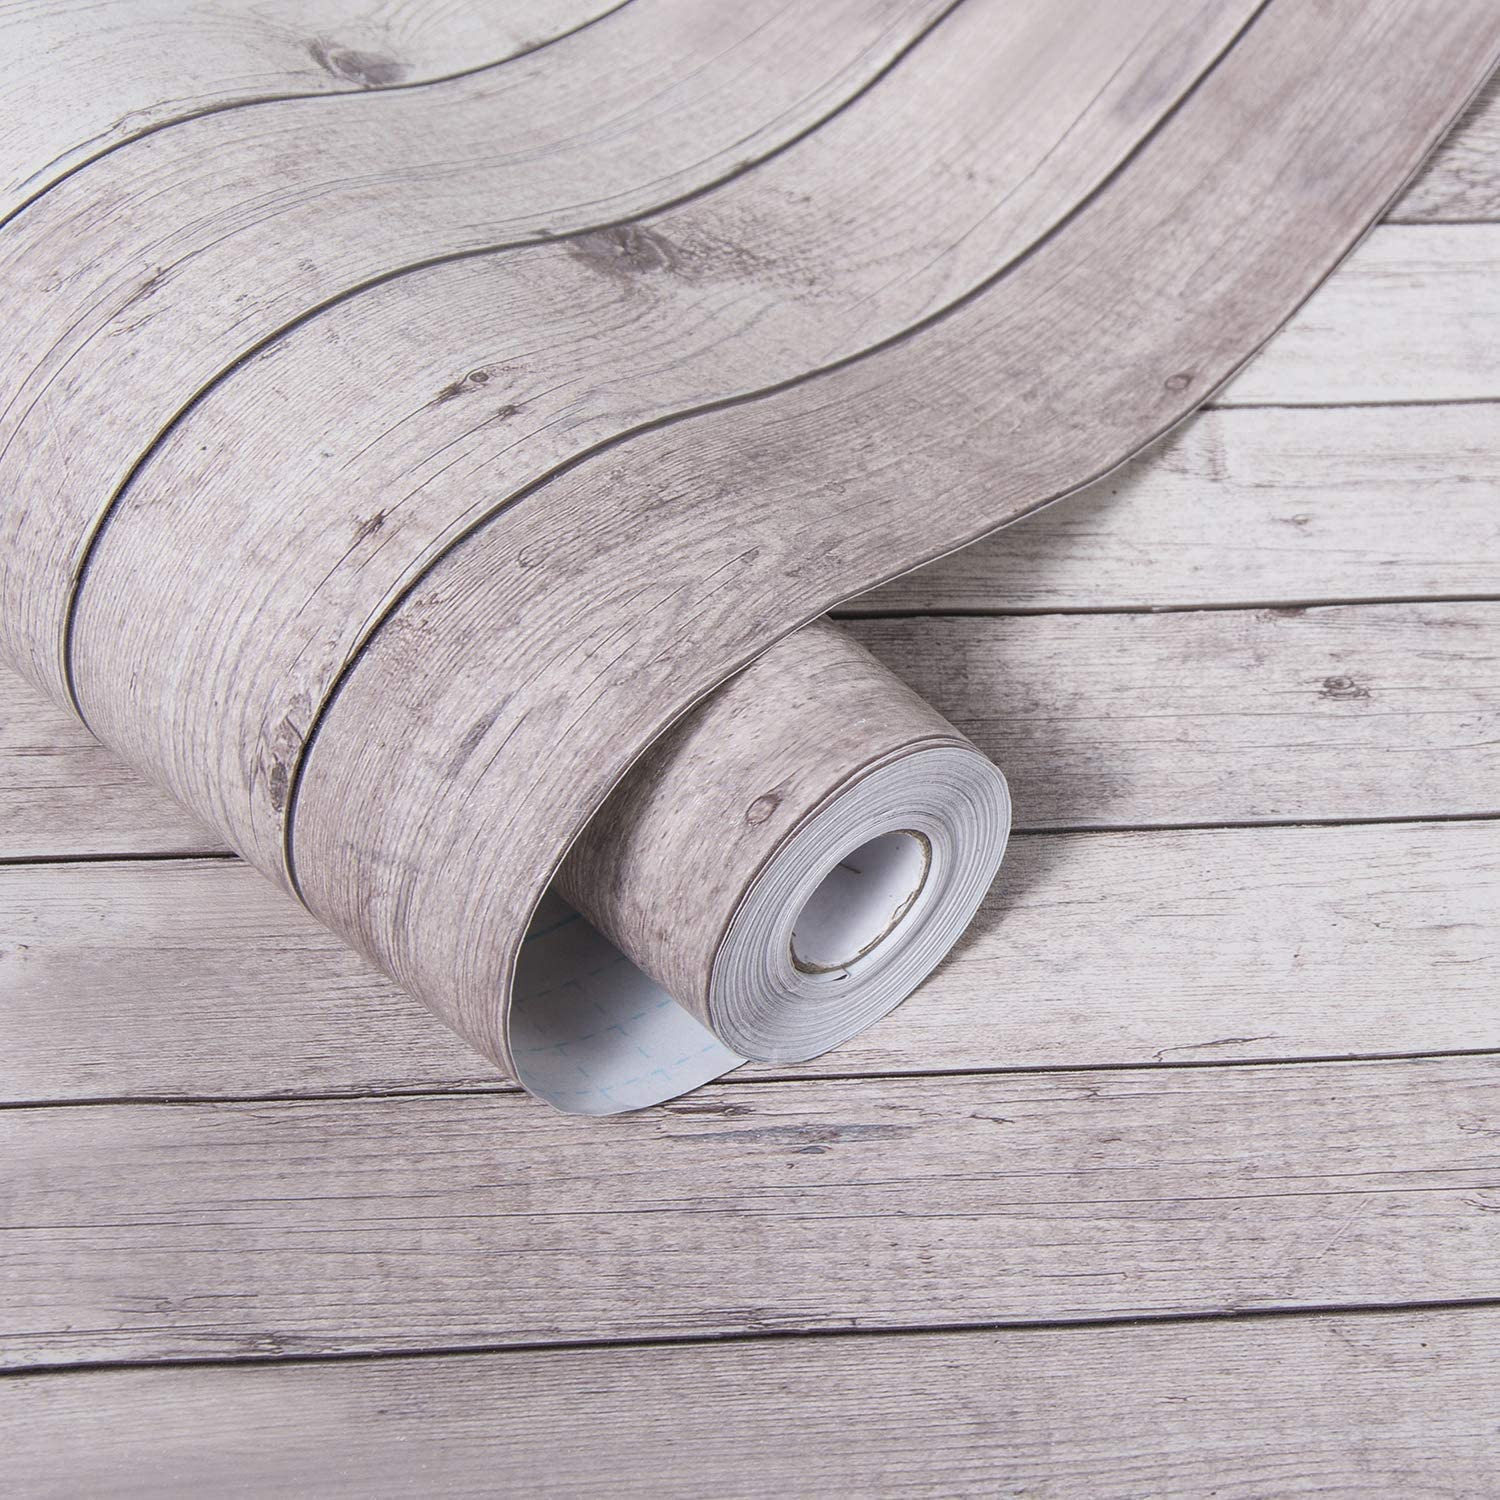 LUCKYYJ Peel and Stick Wallpaper Self Adhesive Removable Wall Decor Reclaimed Wood Look Vinyl Film Shiplap Wood Panel Wallpaper